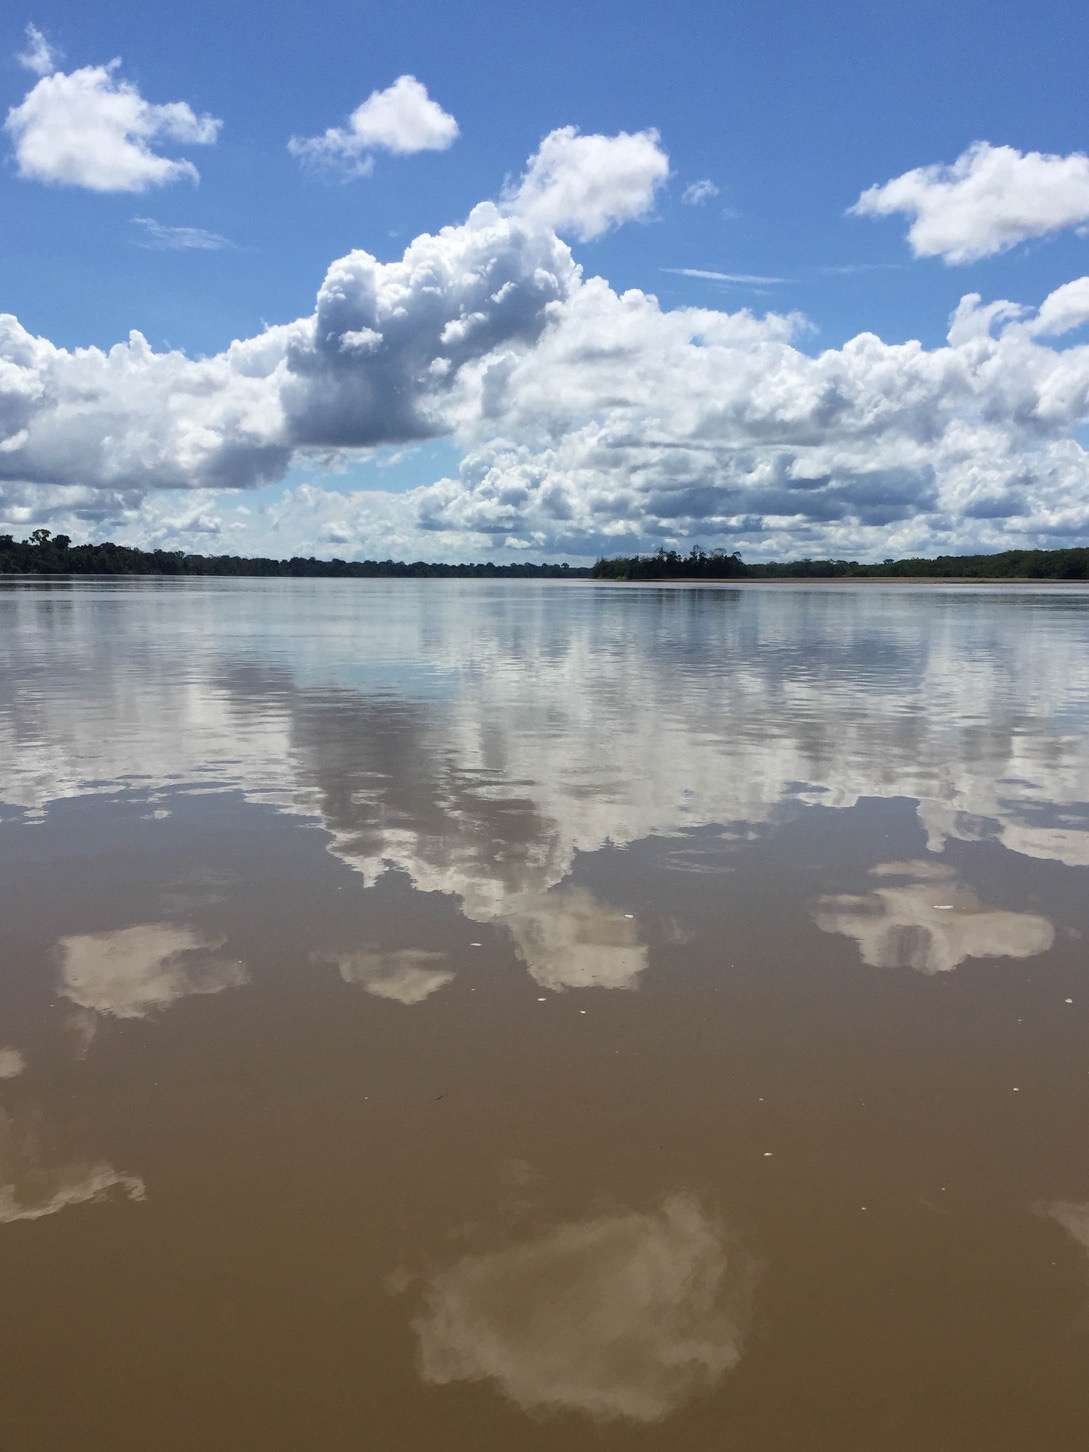 The immensity of the Amazon River must be experienced up close to truly appreciate its majesty.